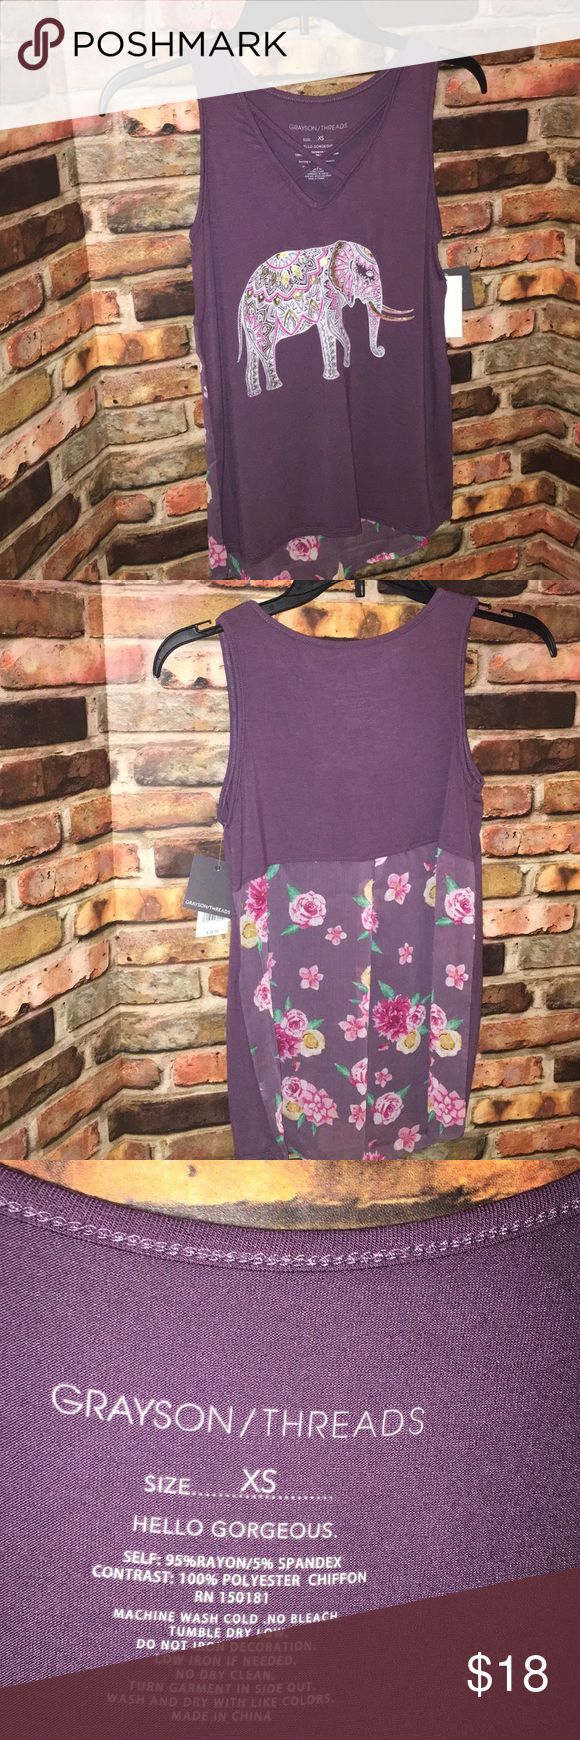 "Grayson Threads XS hello gorgeous tank sleepwear Half of back is semi sheer floral. I believe this is a sleep tank but doesn't look like a pj top. Super cute! Approx 14 1/2"" armpit to armpit and  23"" long front and 26 1/2"" long back. grayson theeads Tops Tank Tops"